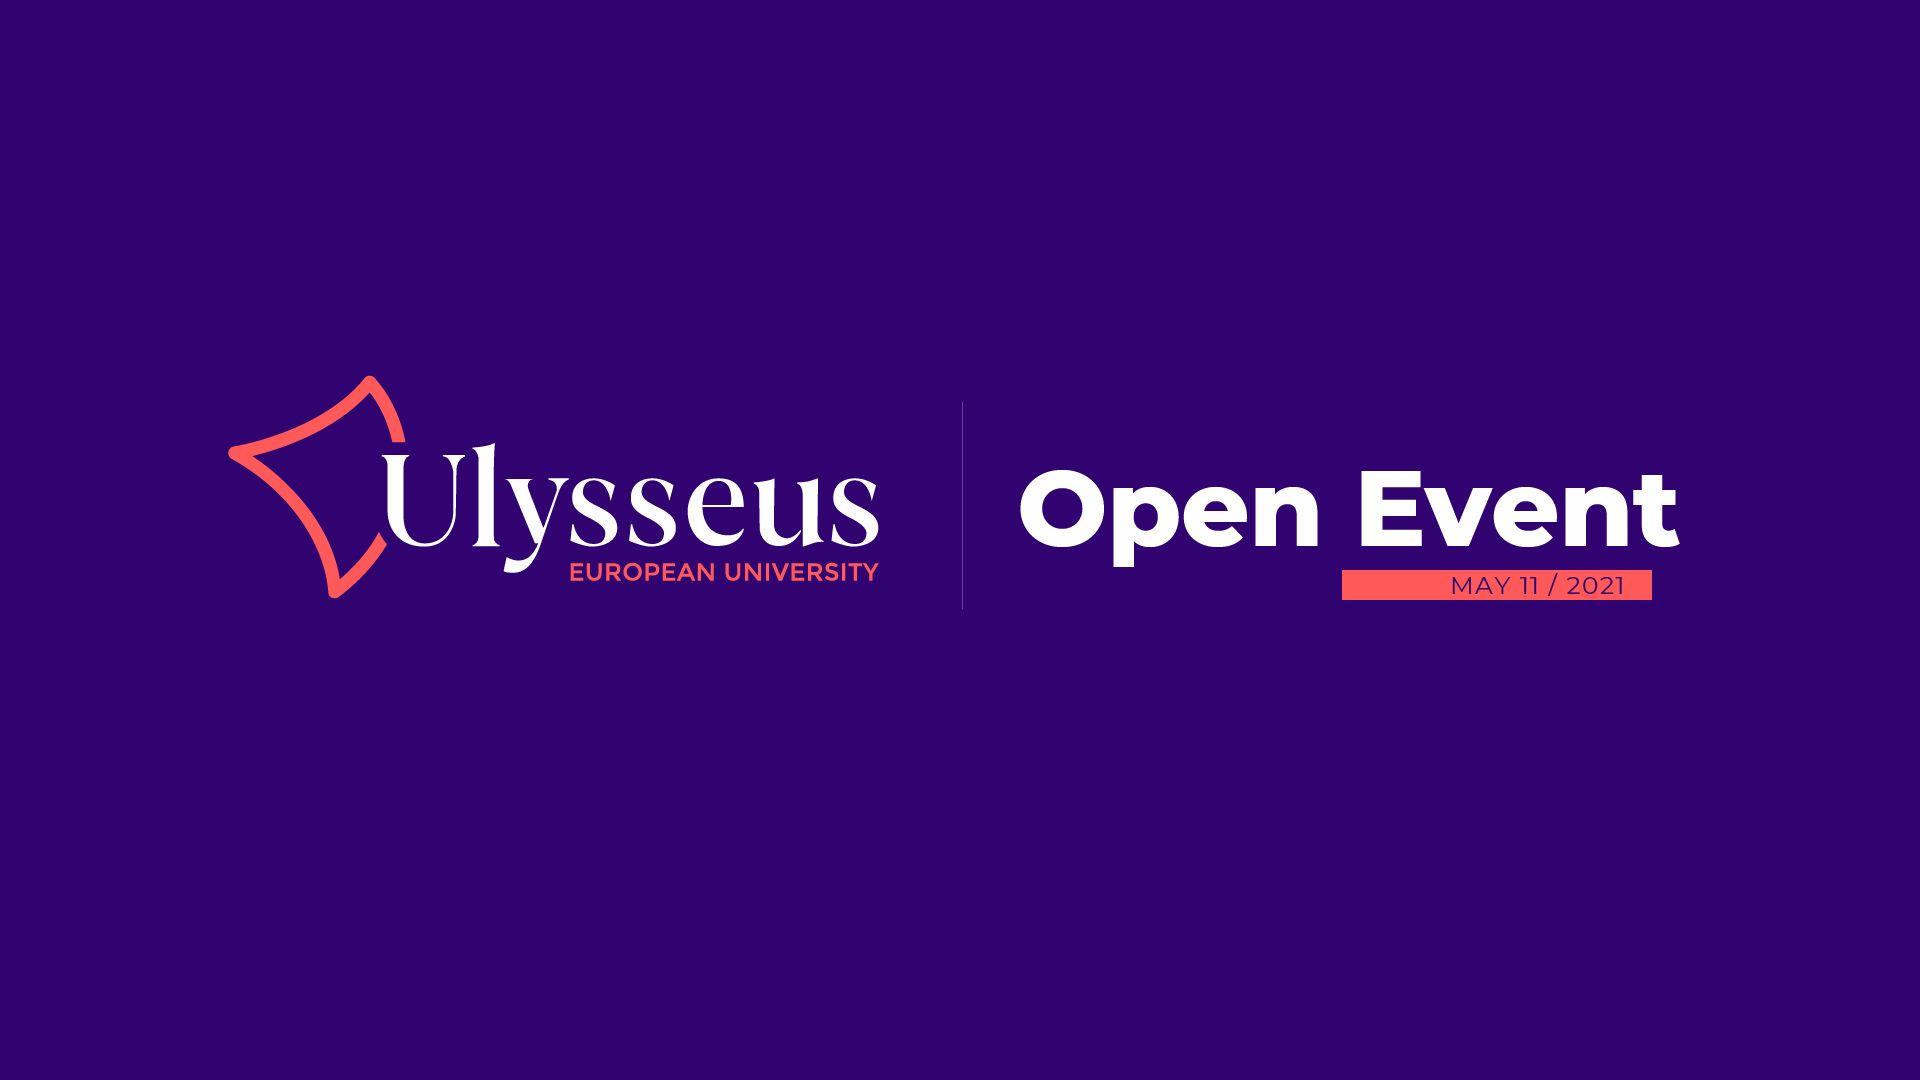 Registration for the Ulysseus Open Event on May 11 now open